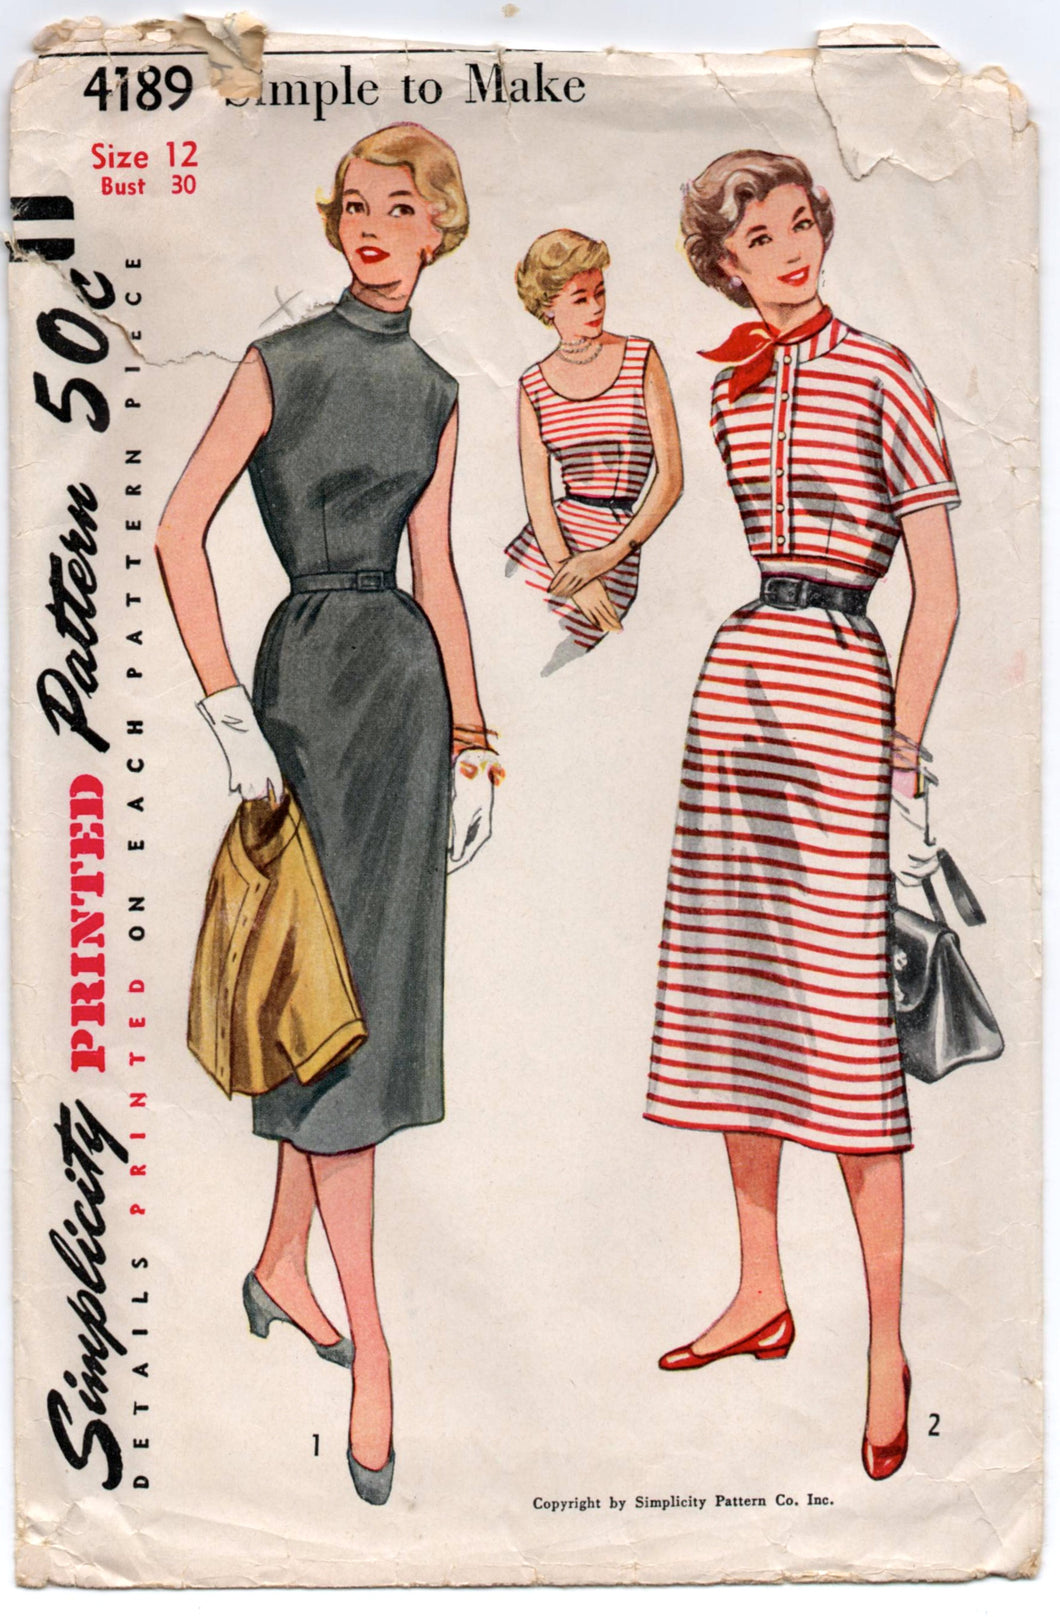 1950's Simplicity Sleeveless Day Dress with Two Collars and Jacket Pattern - Bust 30